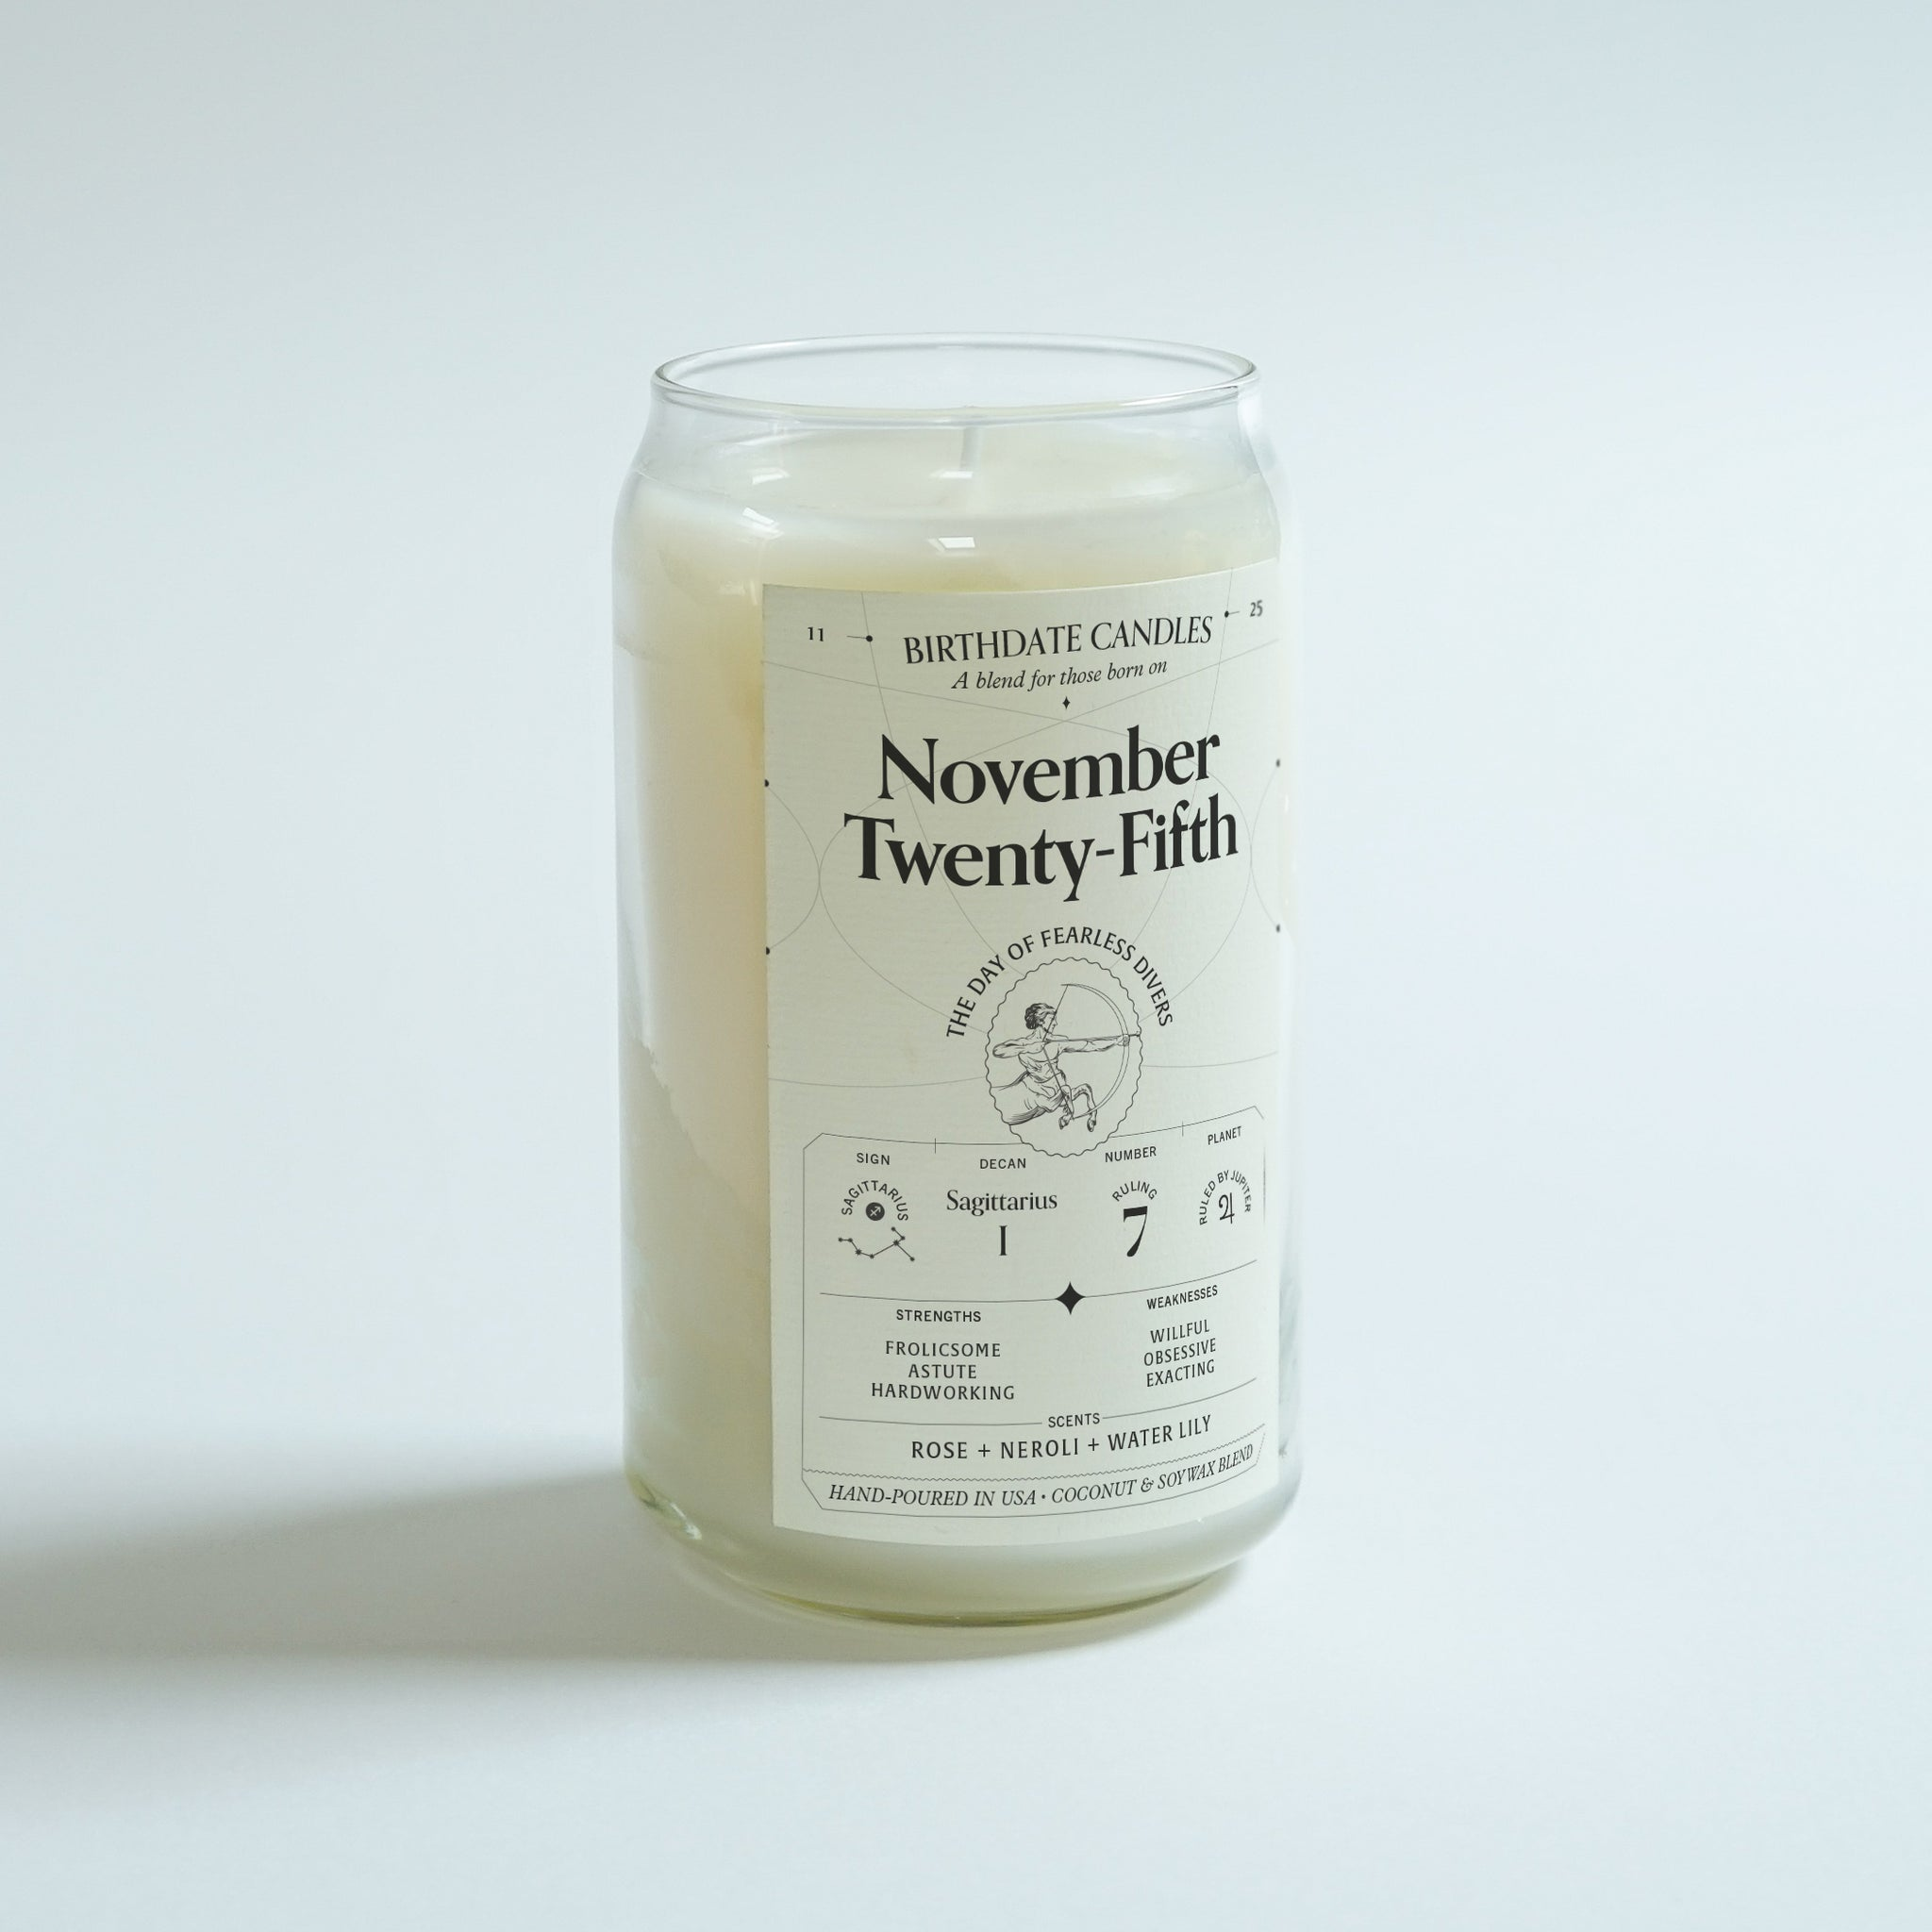 The November Twenty-Fifth Birthday Candle